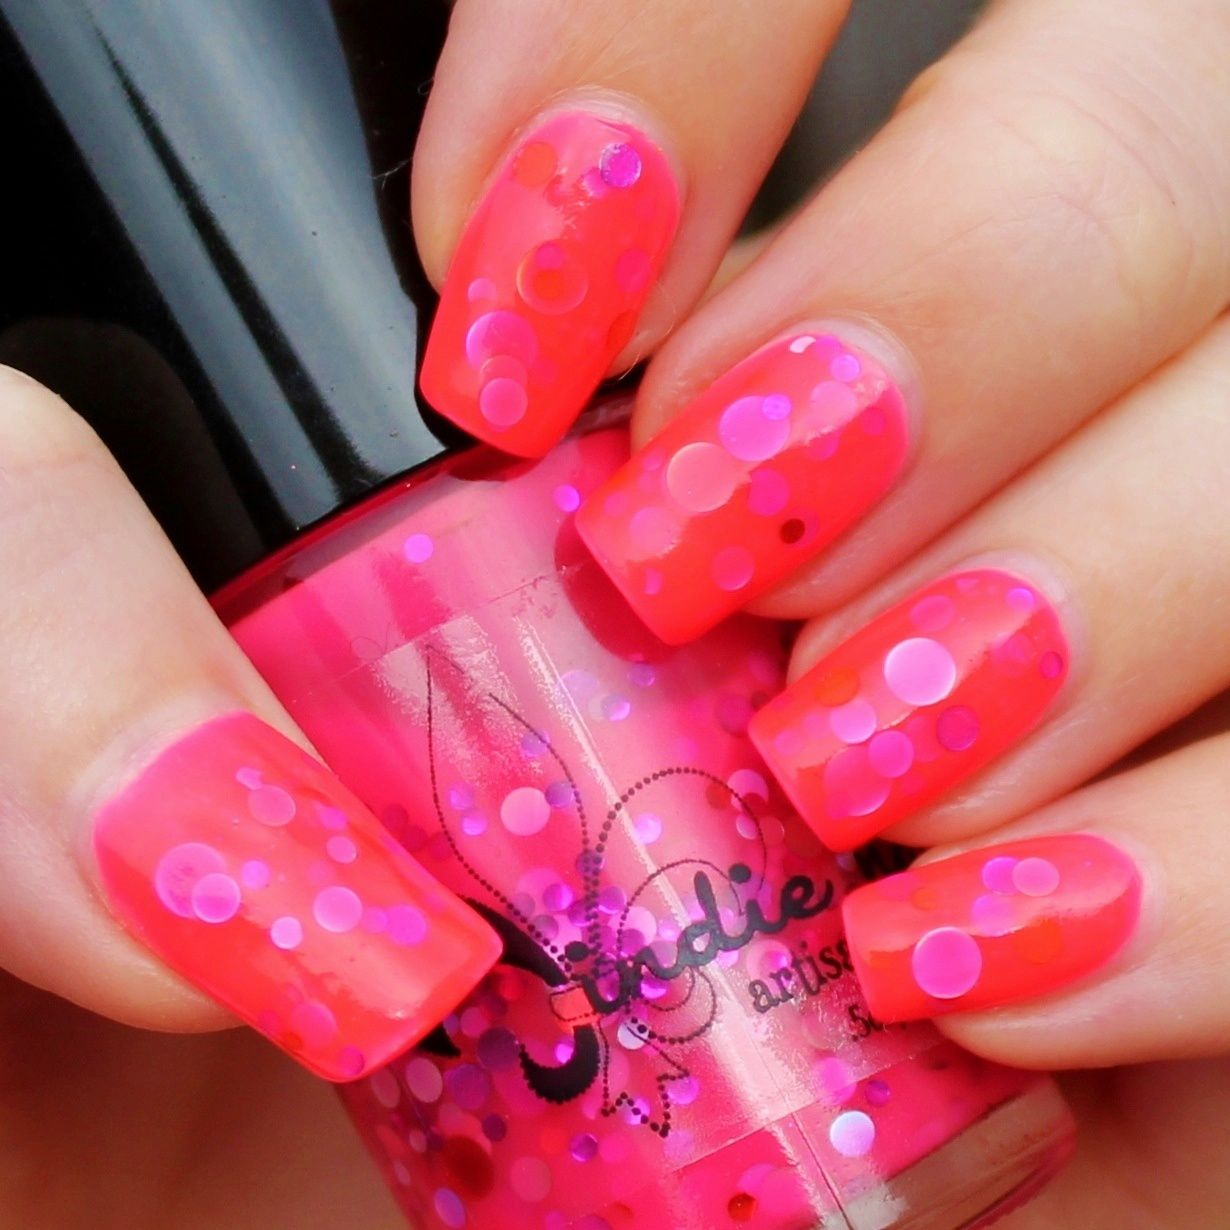 Peel-off Base / Jindie Nails Sexy Barbie / Nail Pattern Boldness Glitter Food / Poshe Top Coat